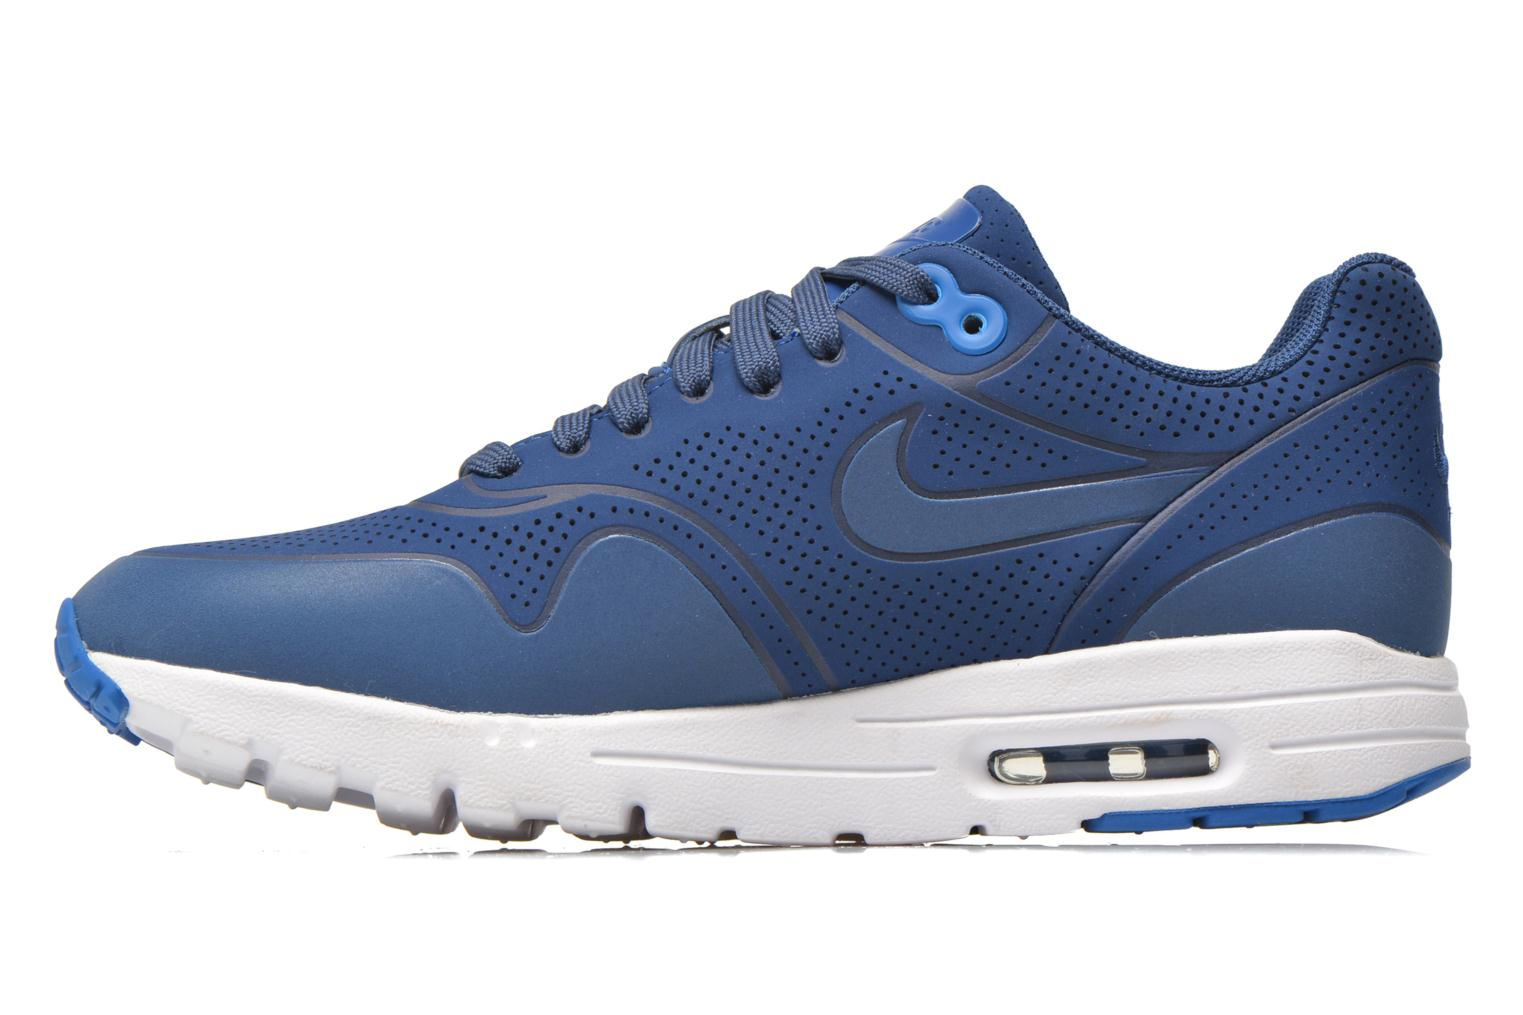 Wmns Air Max 1 Ultra Moire Coastal Blue/Coastal Blue